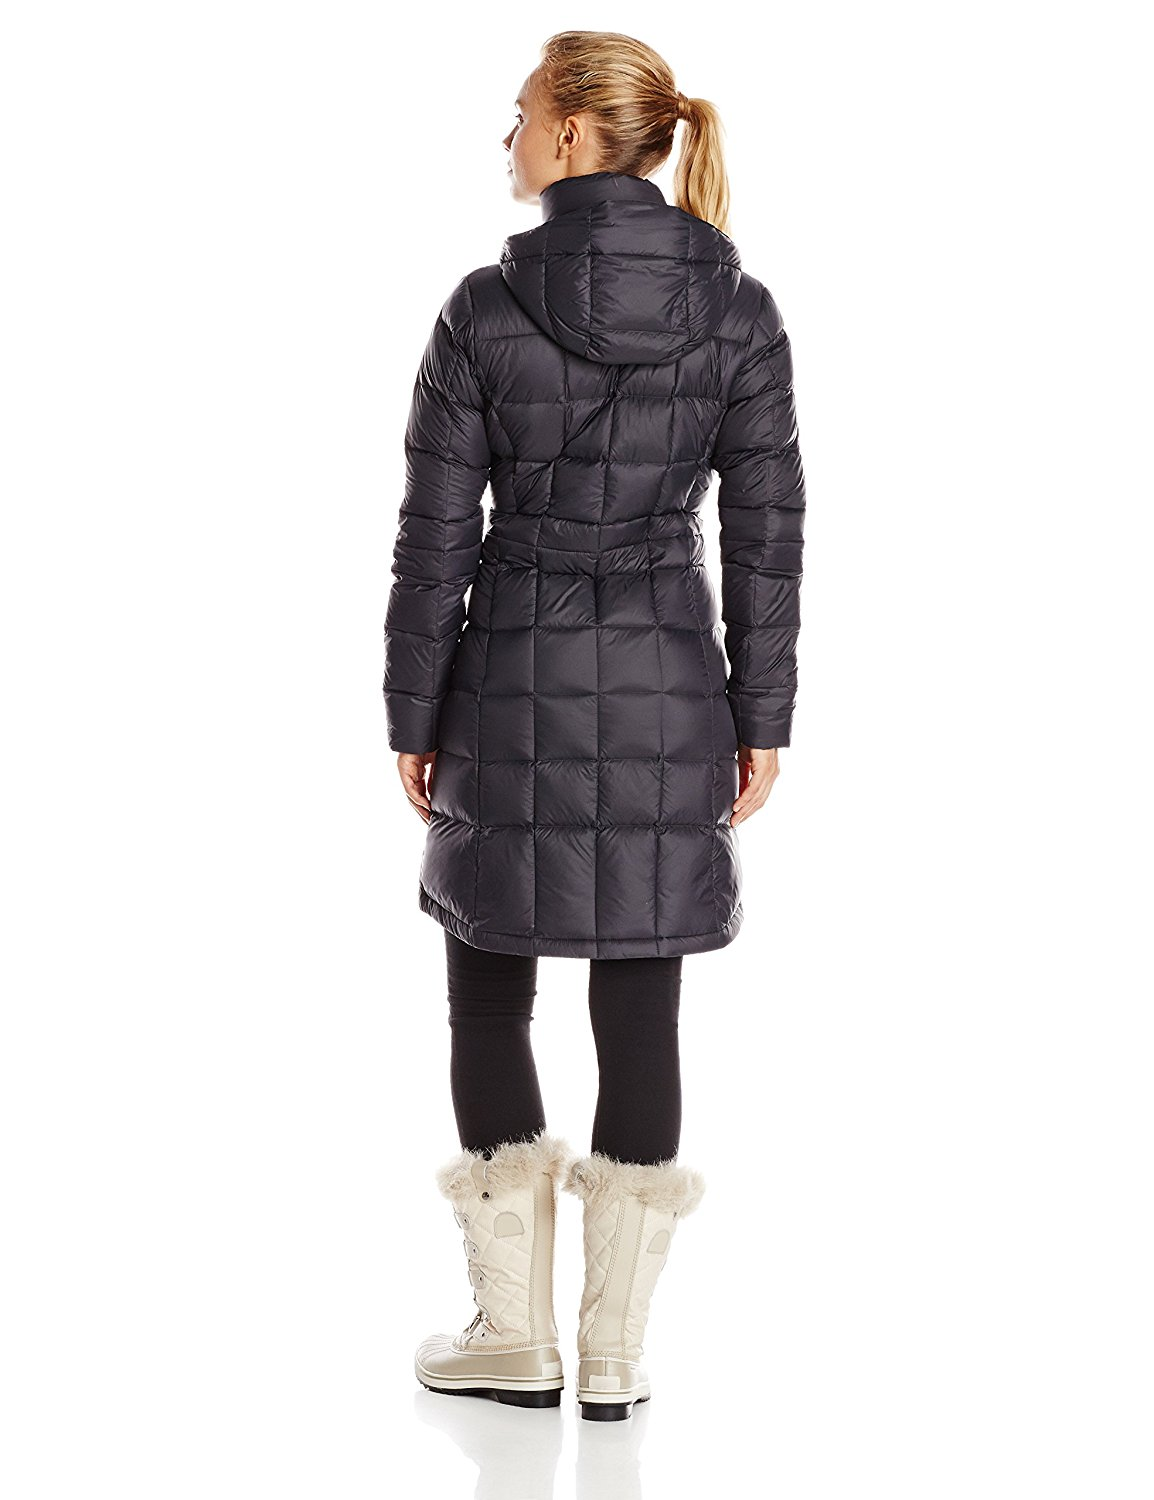 columbia hexbreaker long down jacket Price Point